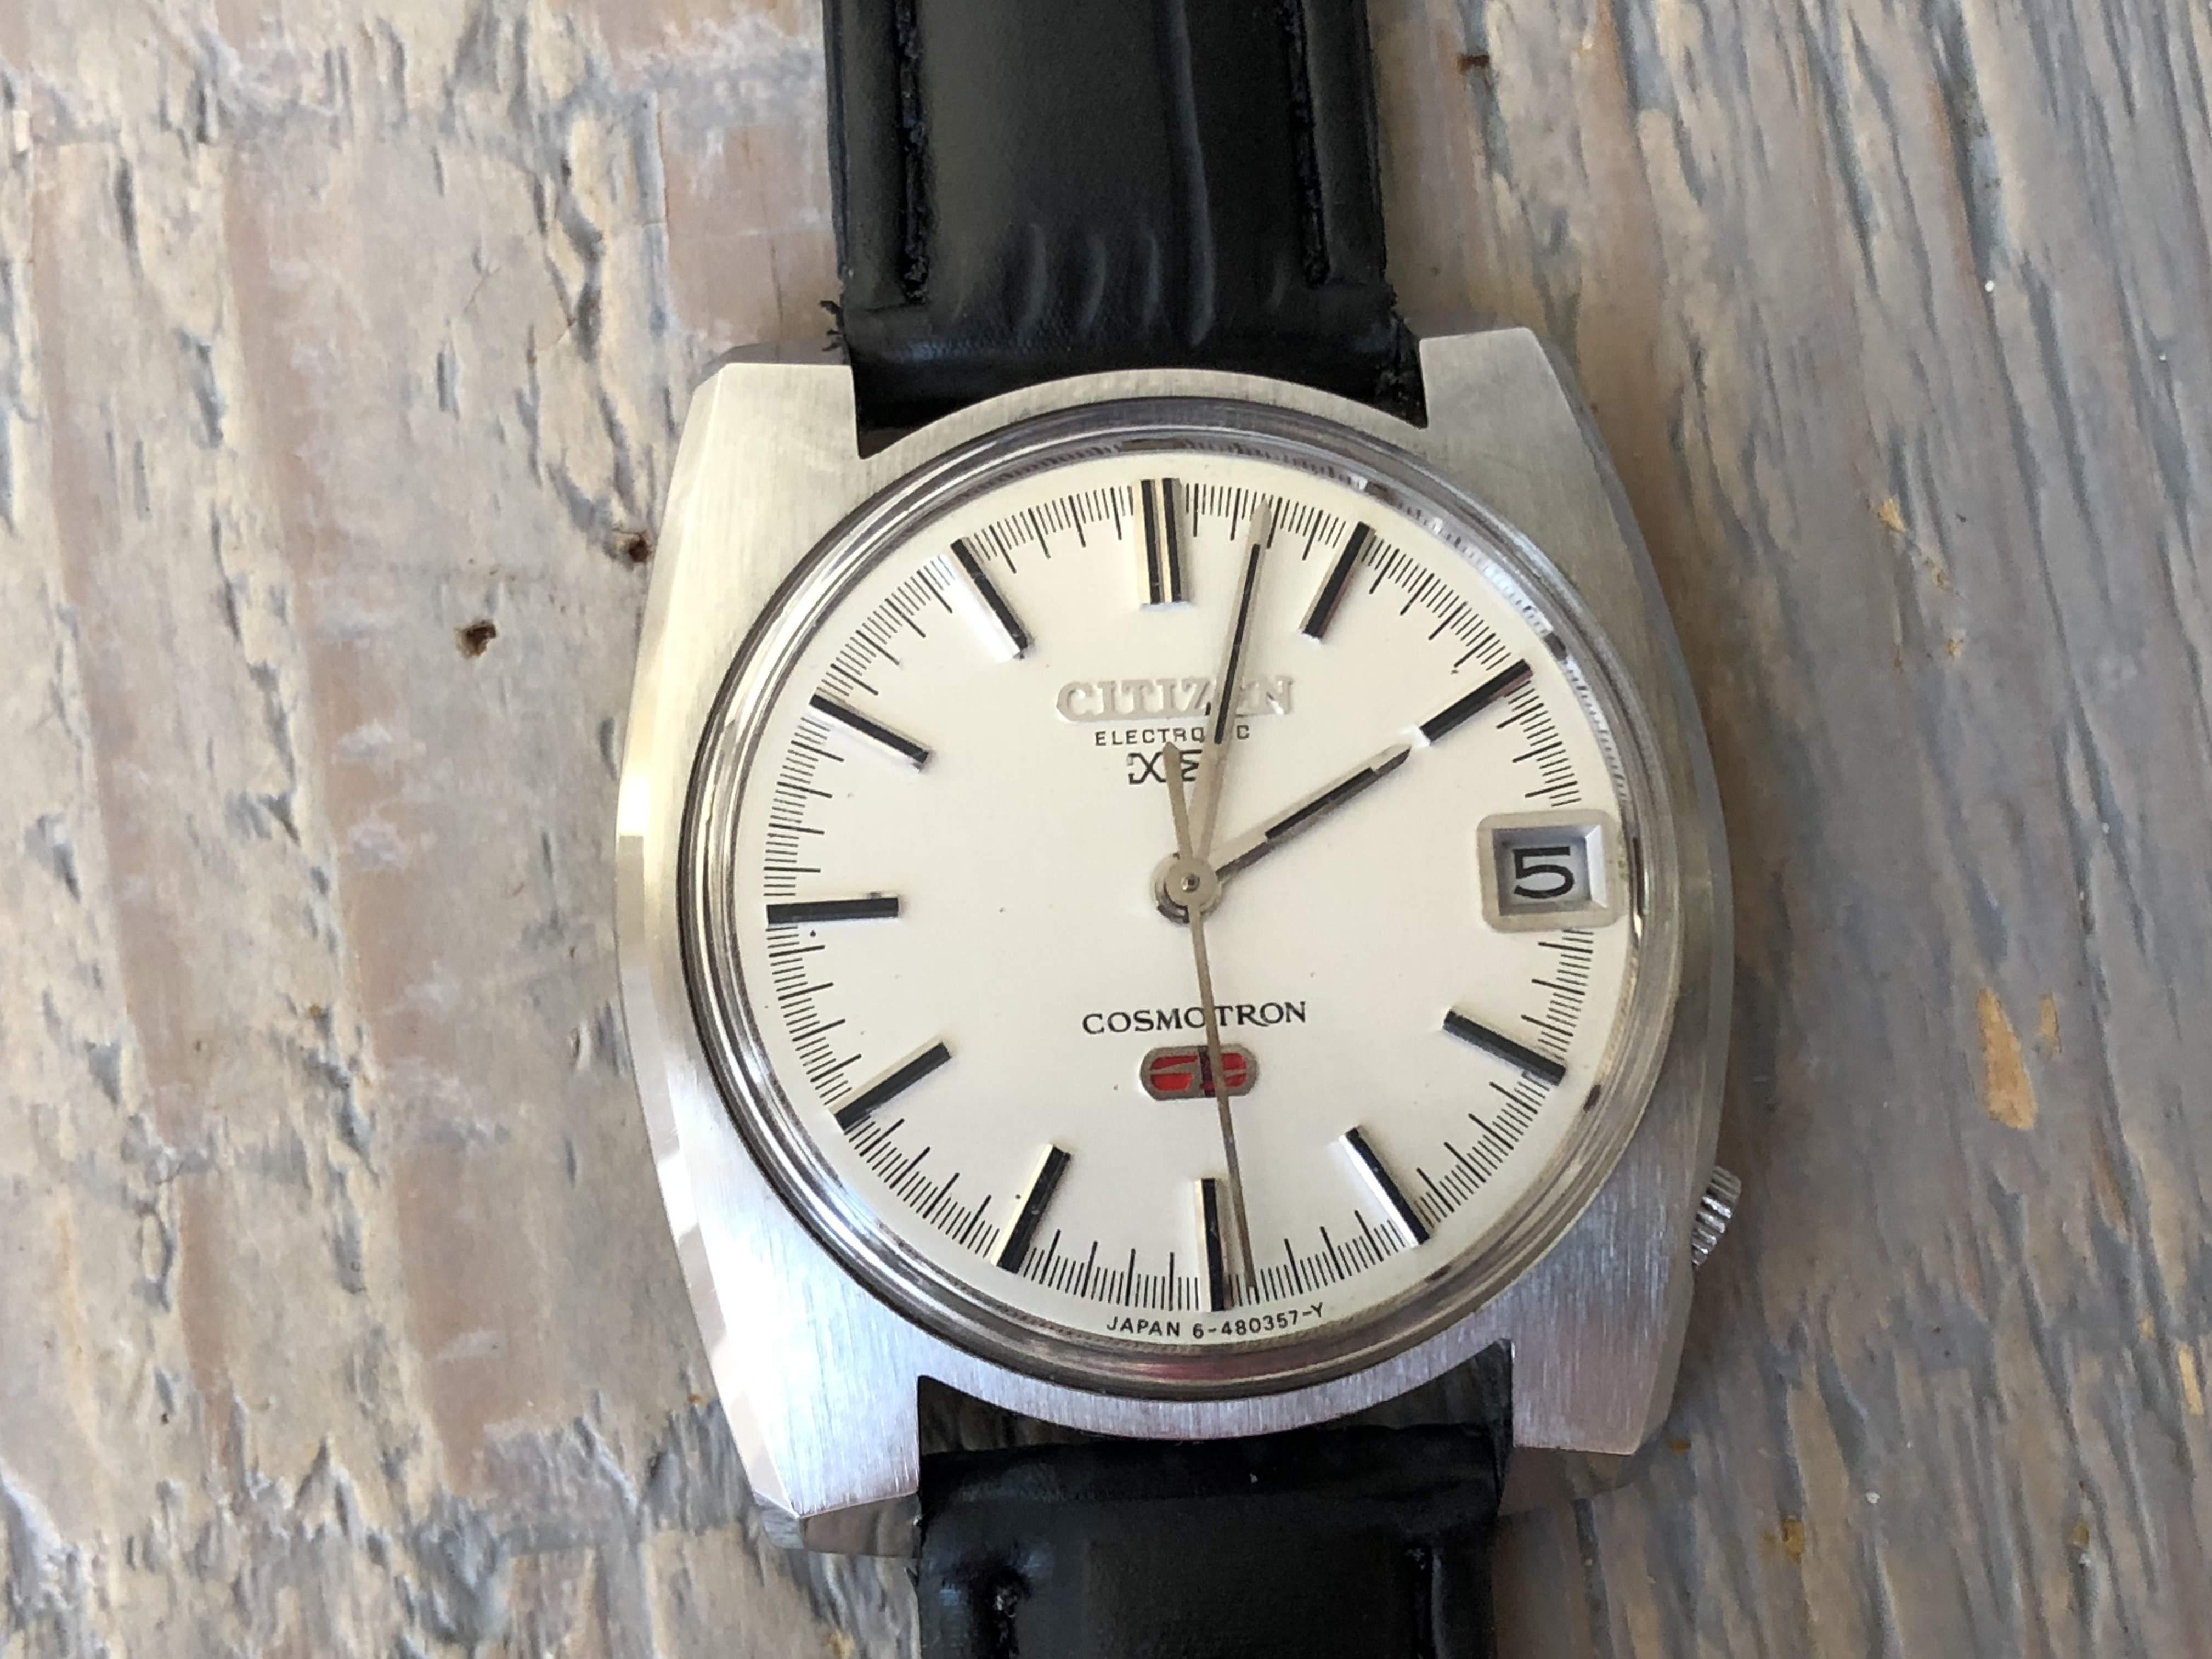 Citizen Cosmotron X8 (Sold)